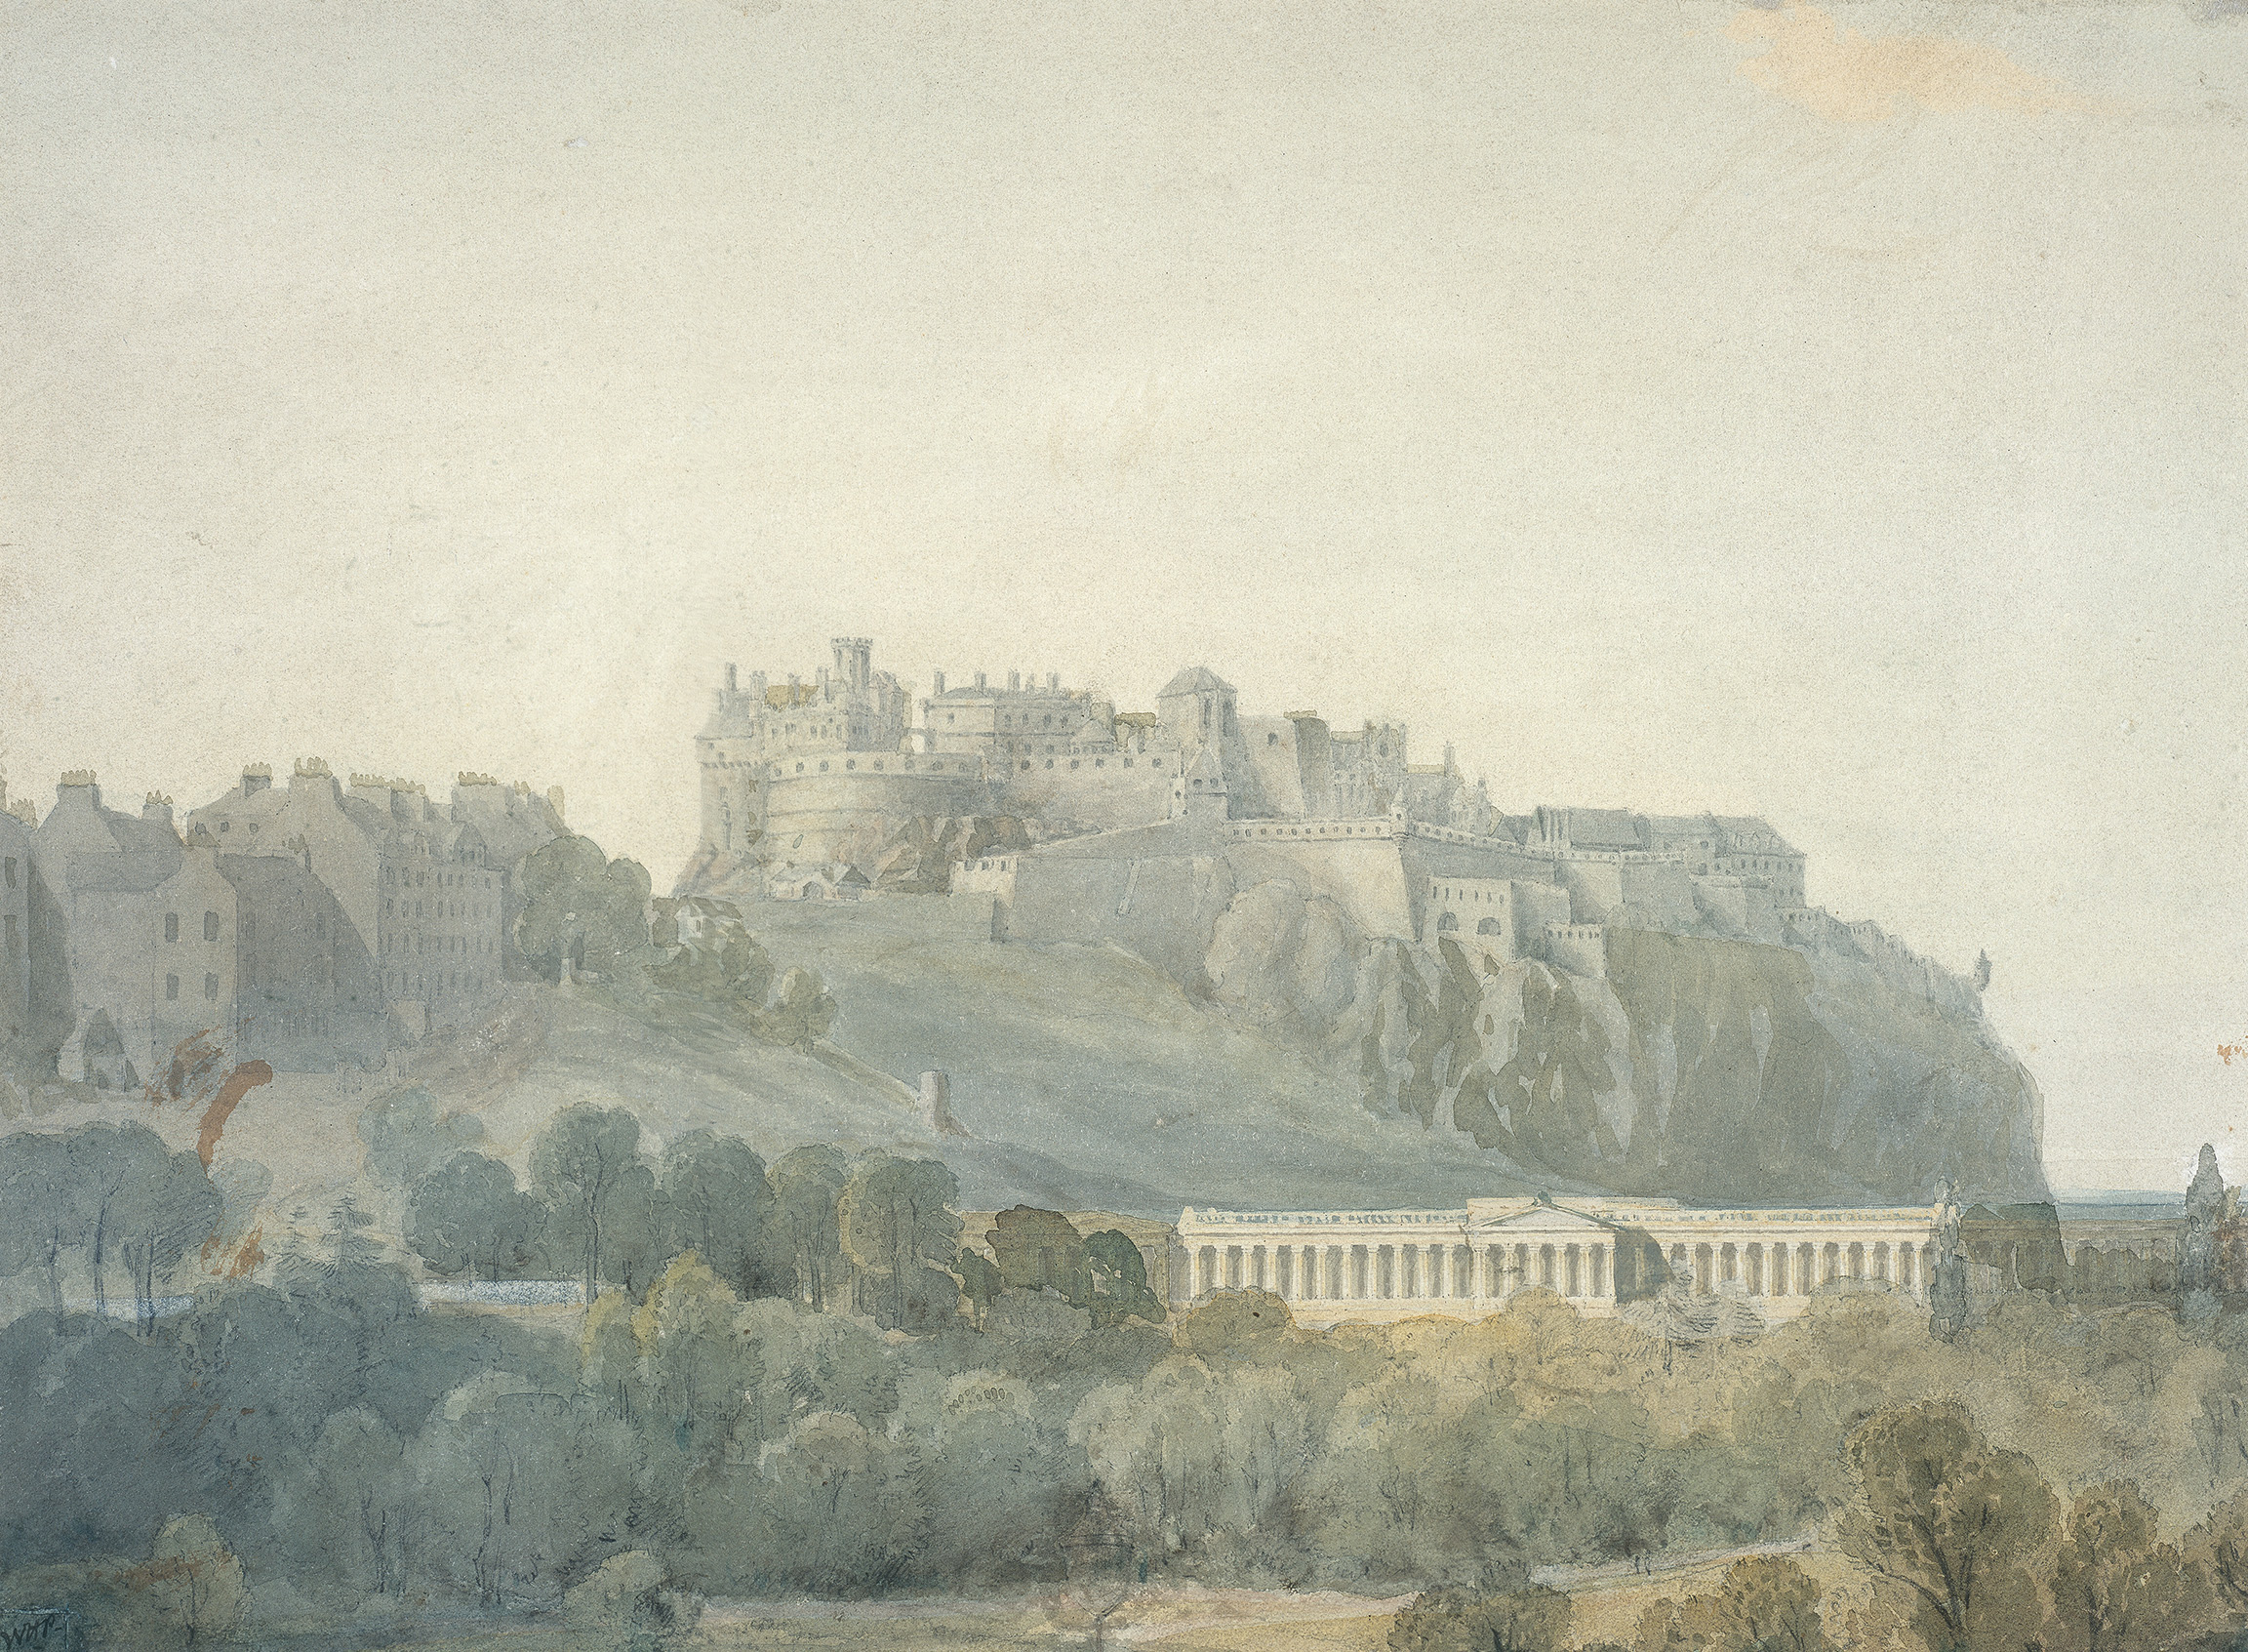 Edinburgh Castle and the Proposed National Gallery of Scotland